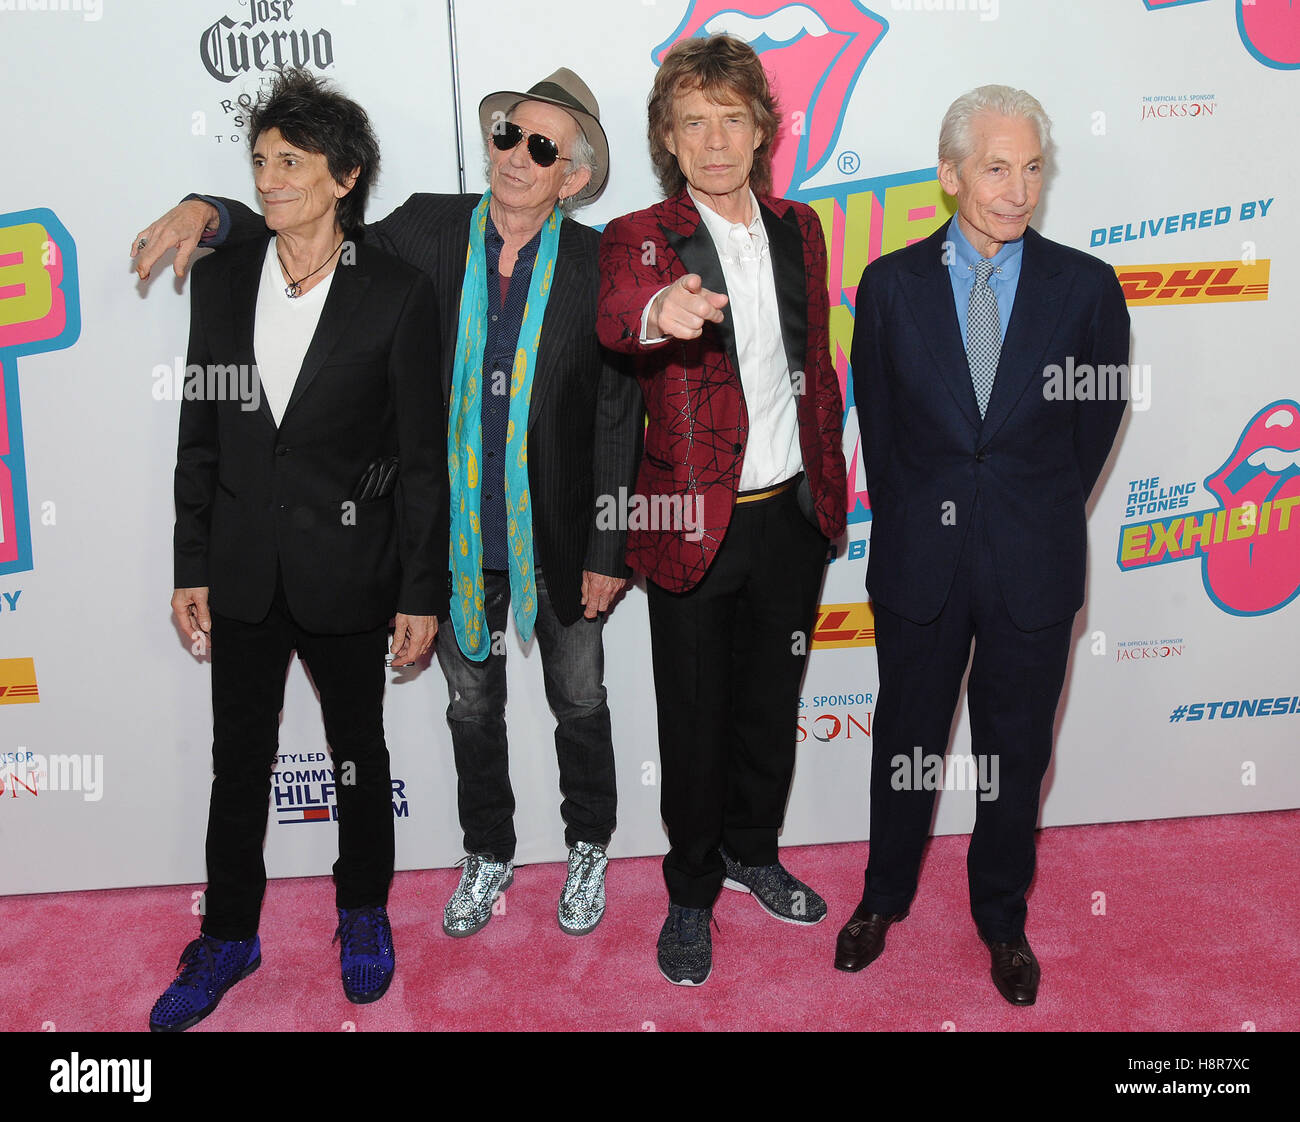 New York, NY, USA. 15th Nov, 2016. Ronnie Wood, Keith Richards, Mick Jagger and Charlie Watts attend The Rolling - Stock Image